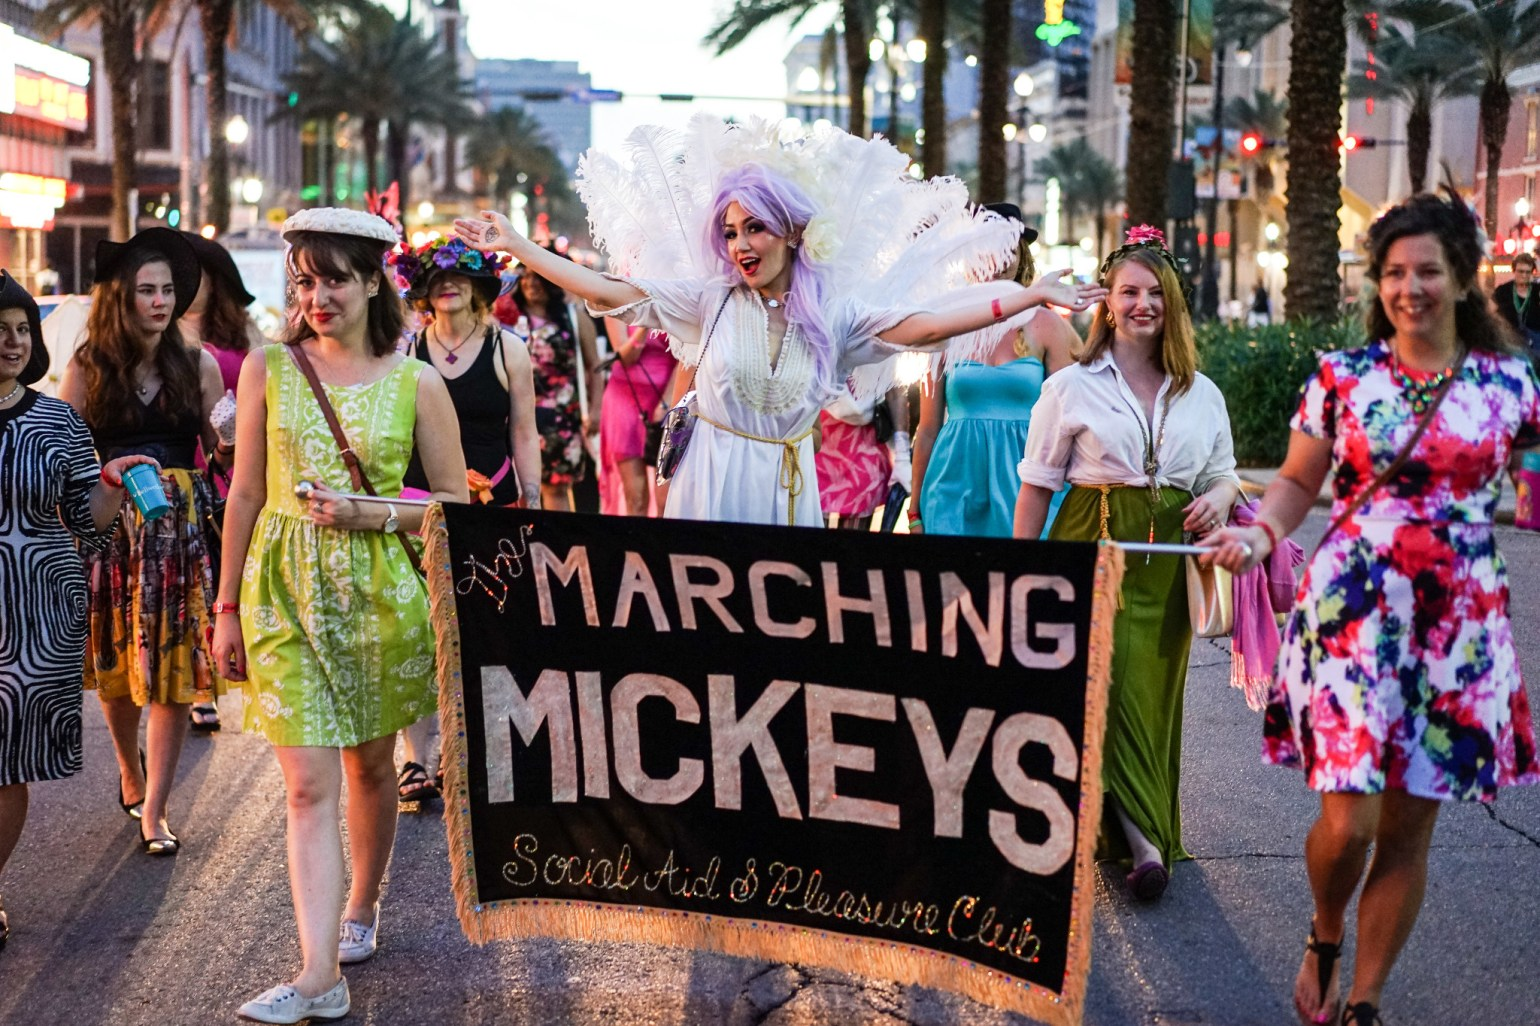 The Marching Mickeys participate in the Stiletto Stroll at Festigals. (Photo: Paul Broussard)